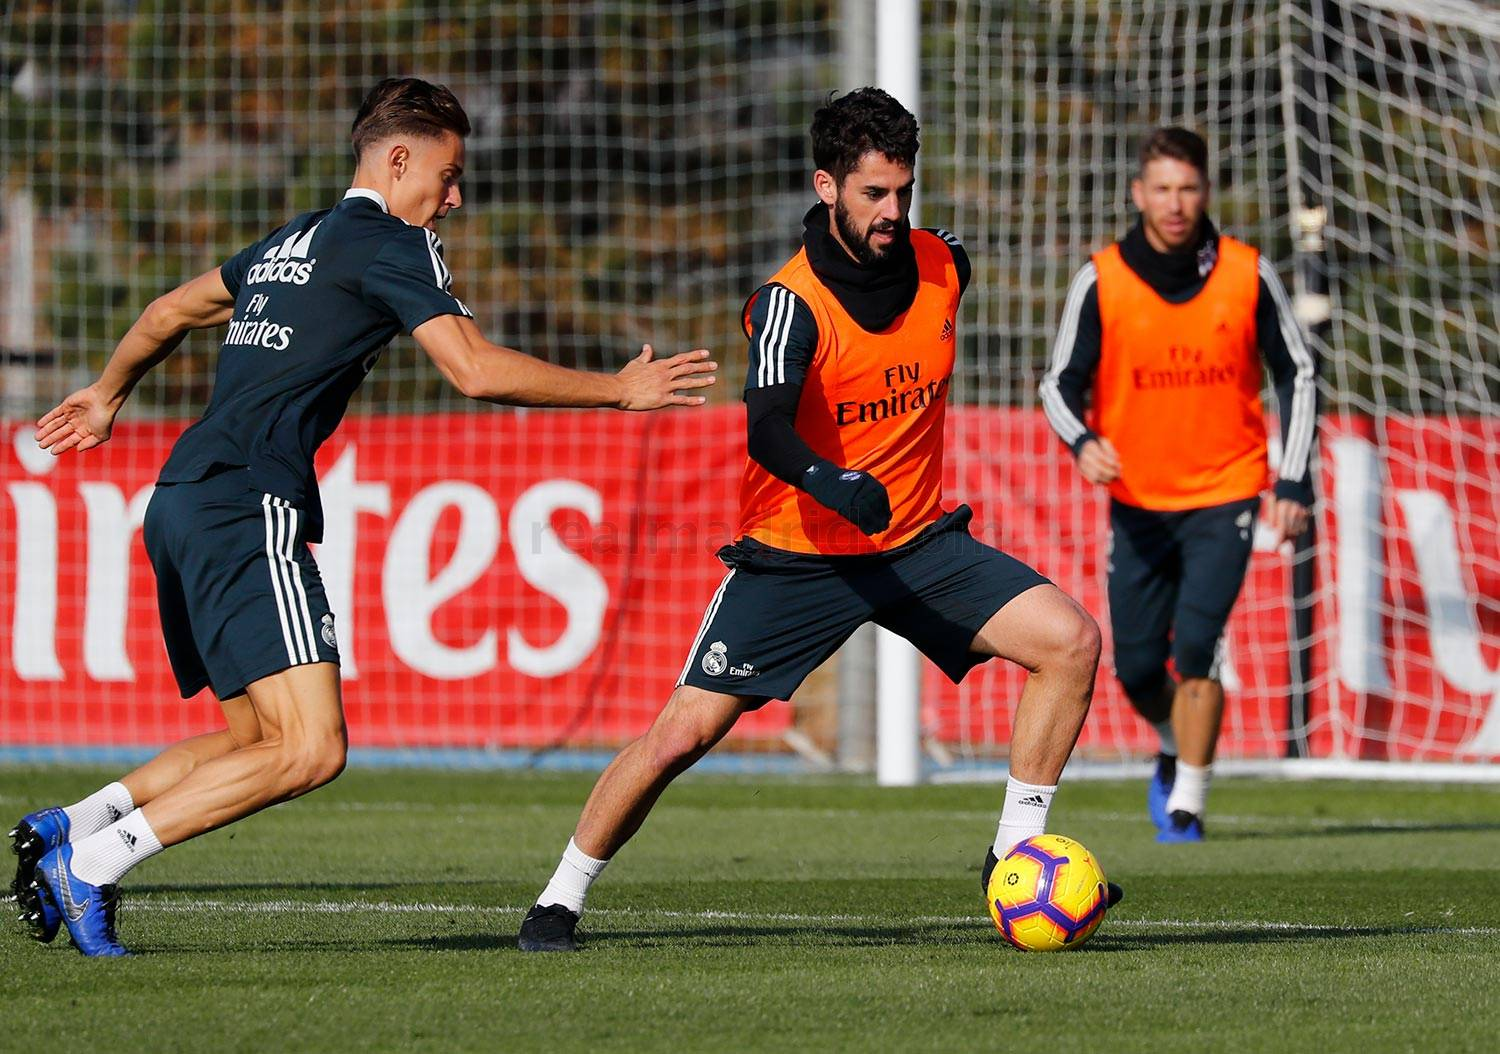 Real Madrid - Entrenamiento del Real Madrid - 30-11-2018